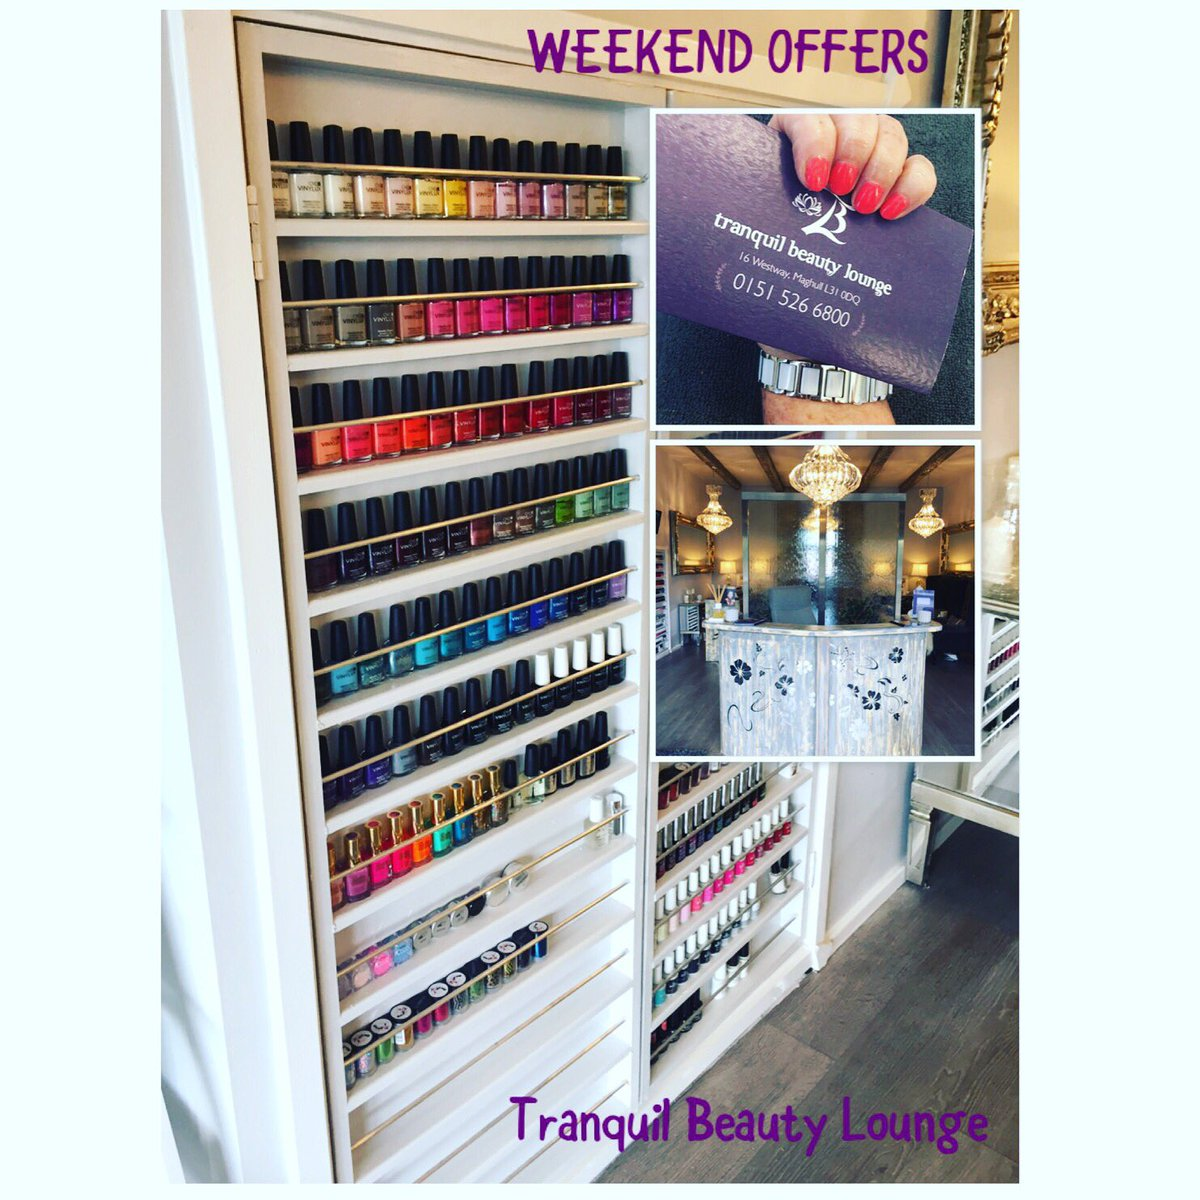 Tranquil beauty on twitter get ready for the weekend girls tranquil beauty on twitter get ready for the weekend girls pamper yourself beautiful with our amazing weekendoffers visit httpstlrriqqksnu solutioingenieria Choice Image